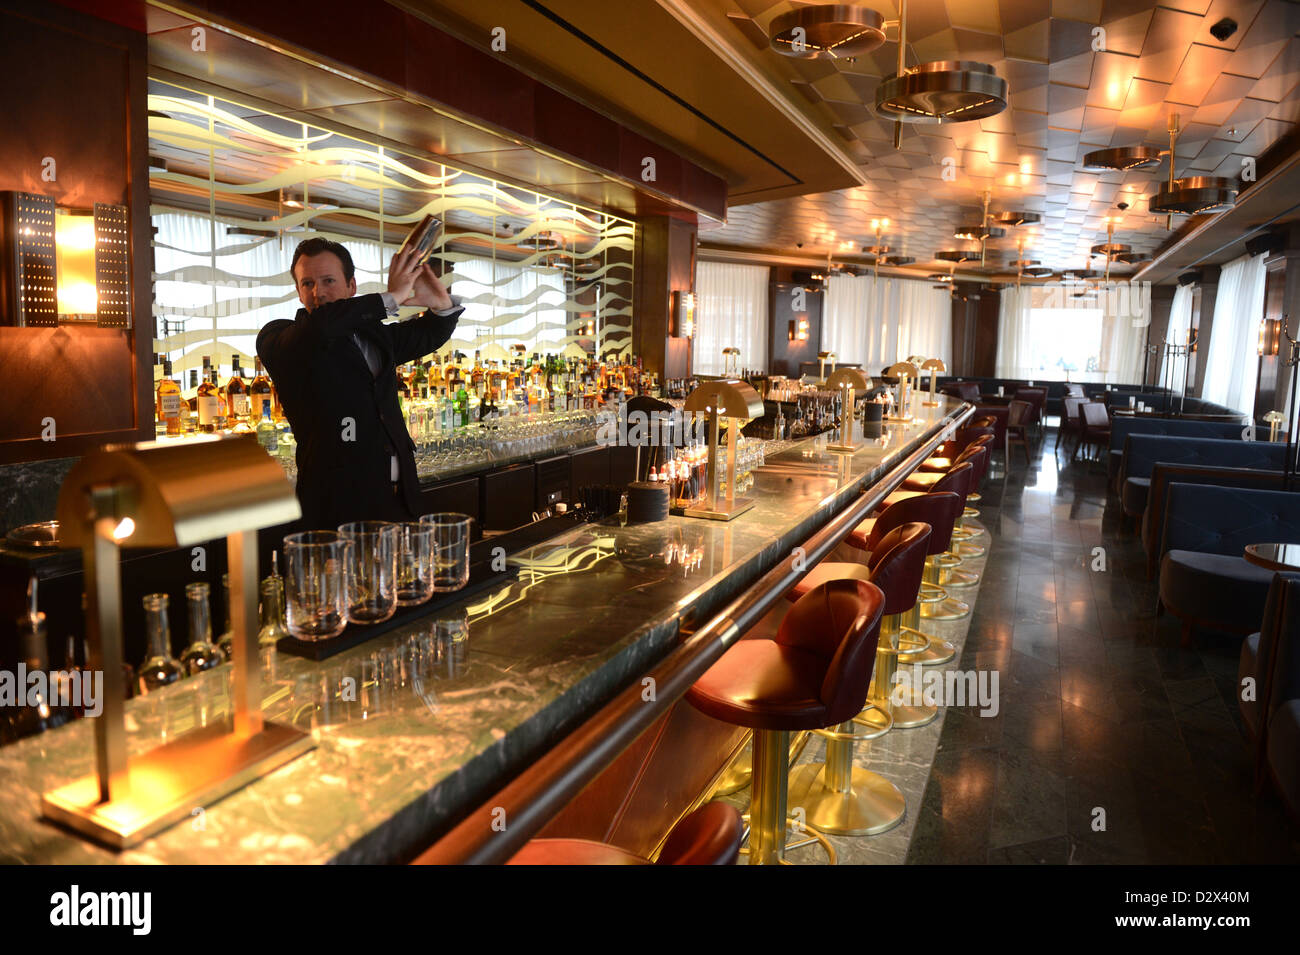 berlin germany the long bar at the waldorf astoria berlin stock photo royalty free image. Black Bedroom Furniture Sets. Home Design Ideas